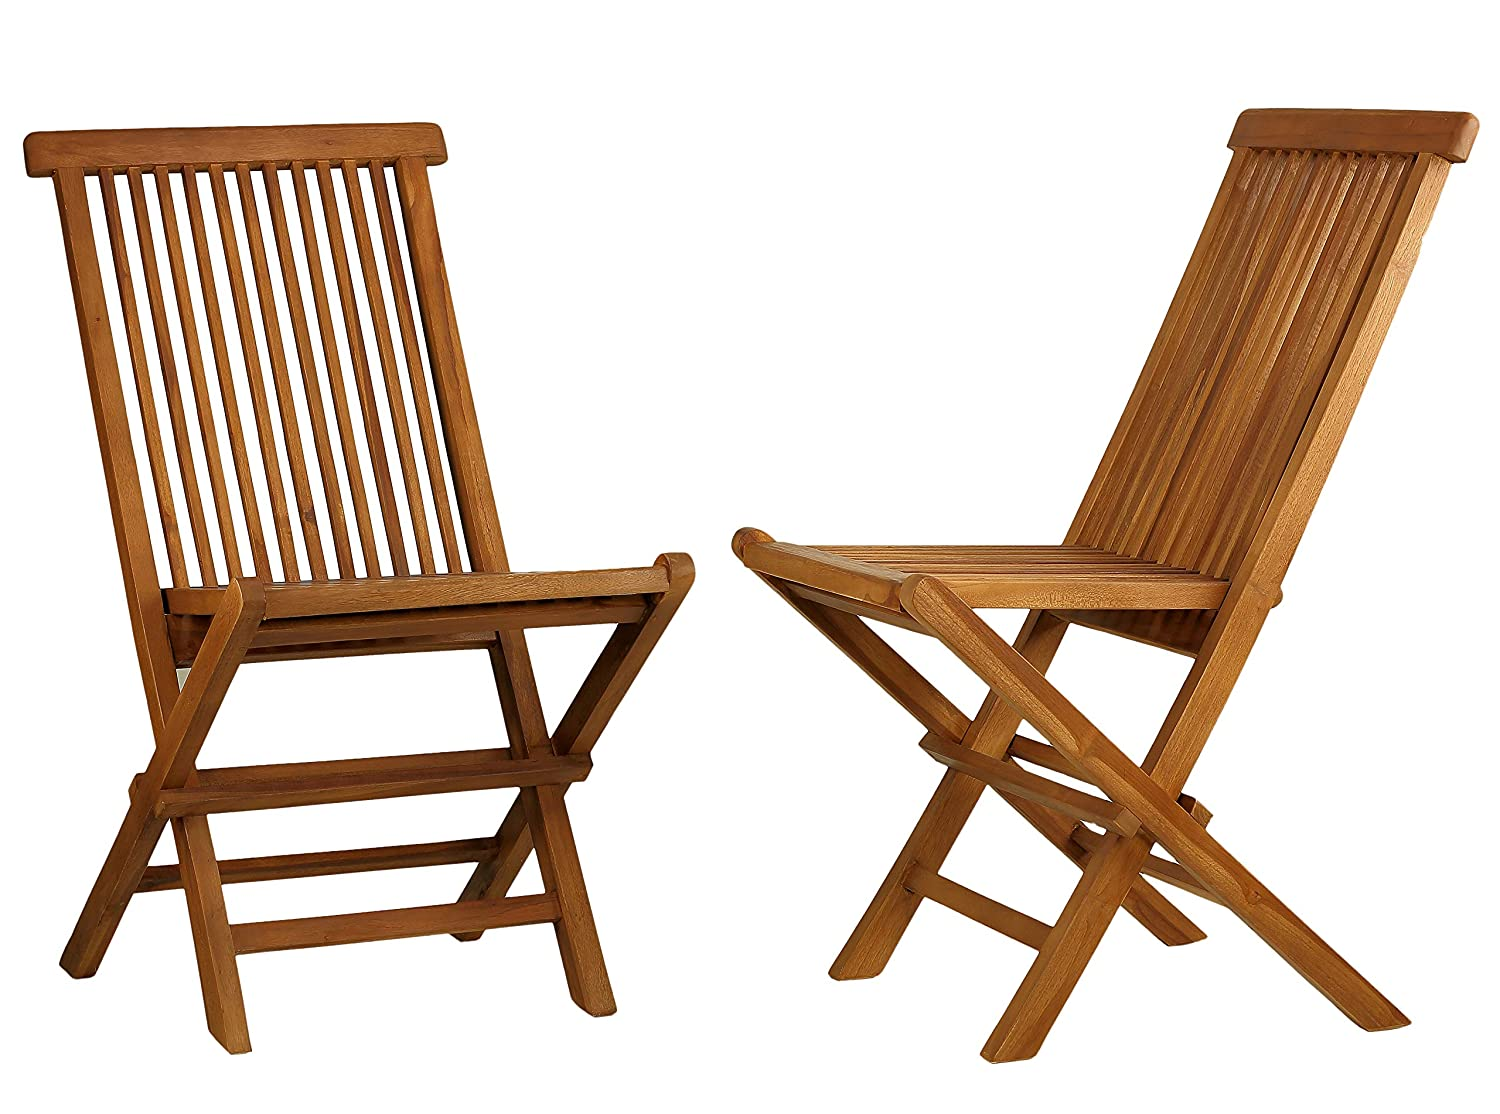 Bare Decor BARE-DC1021 Vega Outdoor Folding Chair, Set of 2, Teak